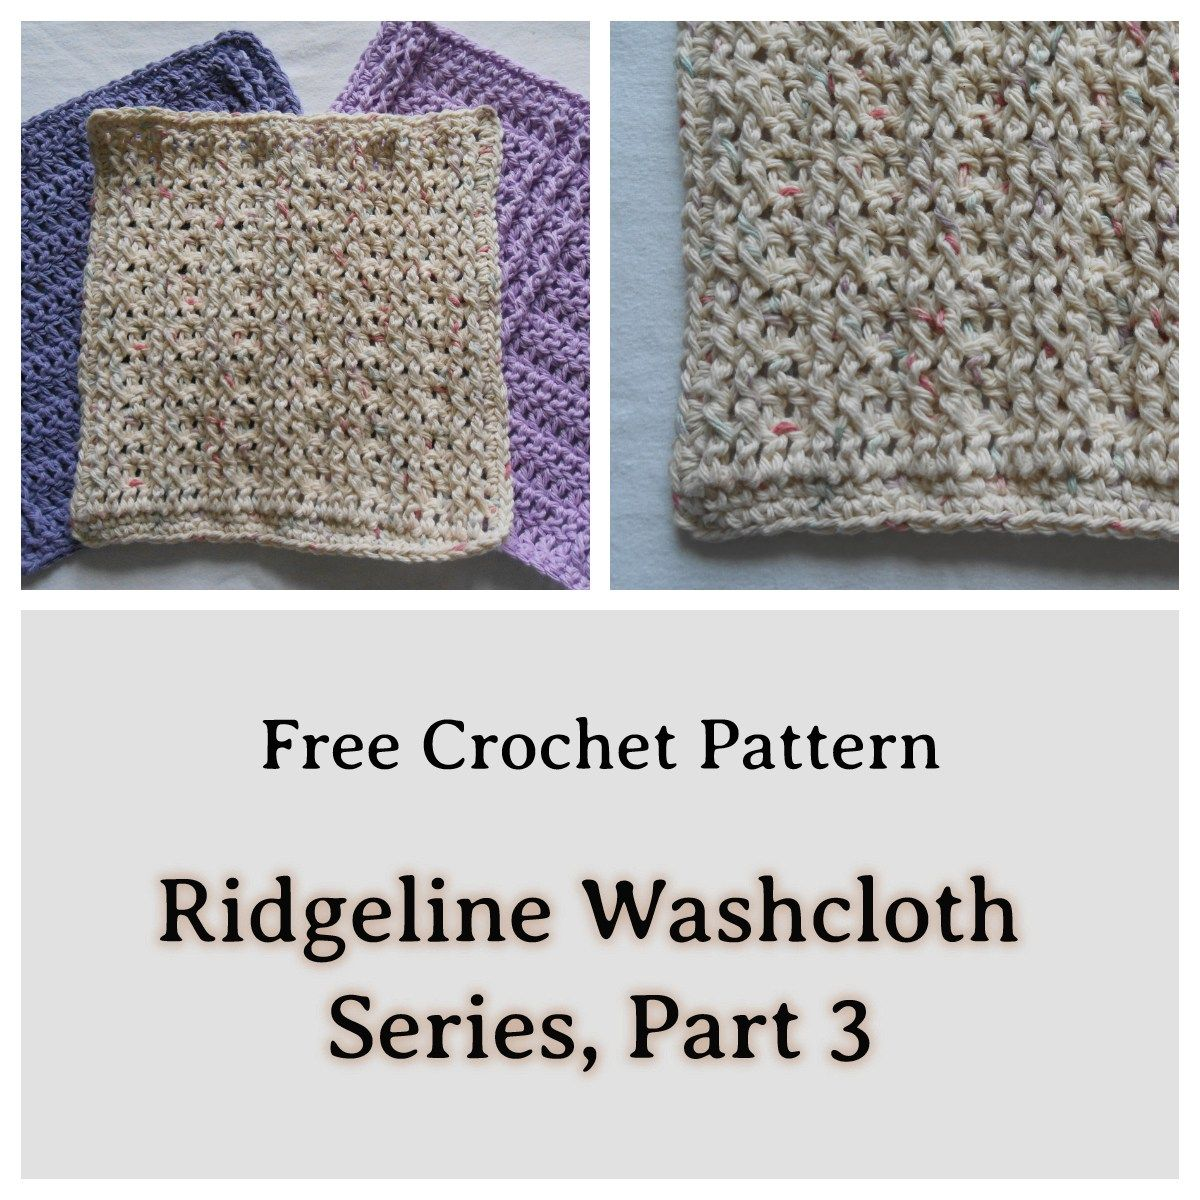 Ridgeline Washcloth Series, Part 3 – Free Crochet Pattern | crochet ...